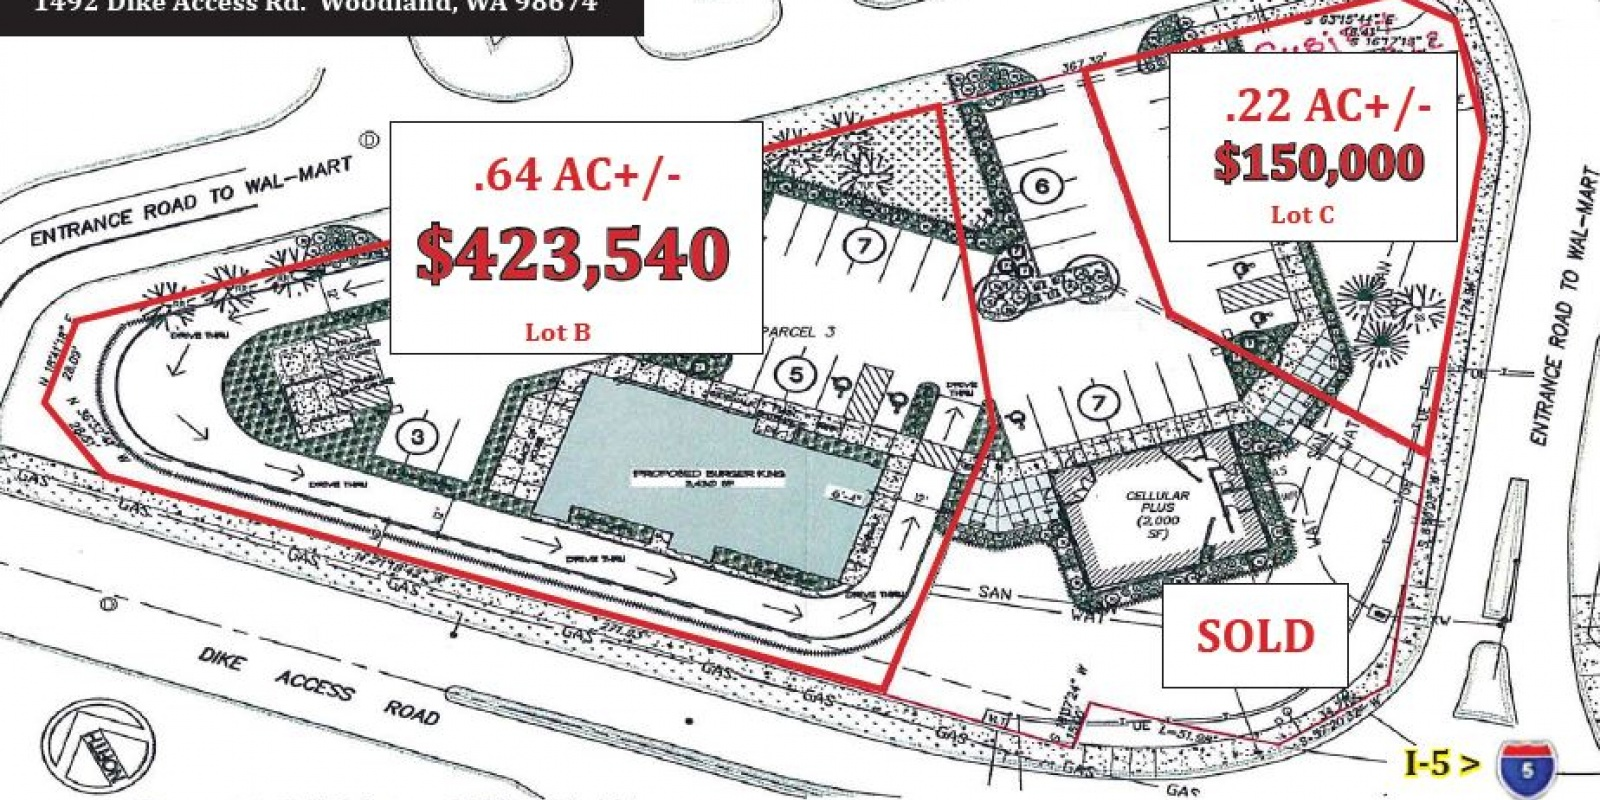 Hwy Commercial Parcel .64 AC